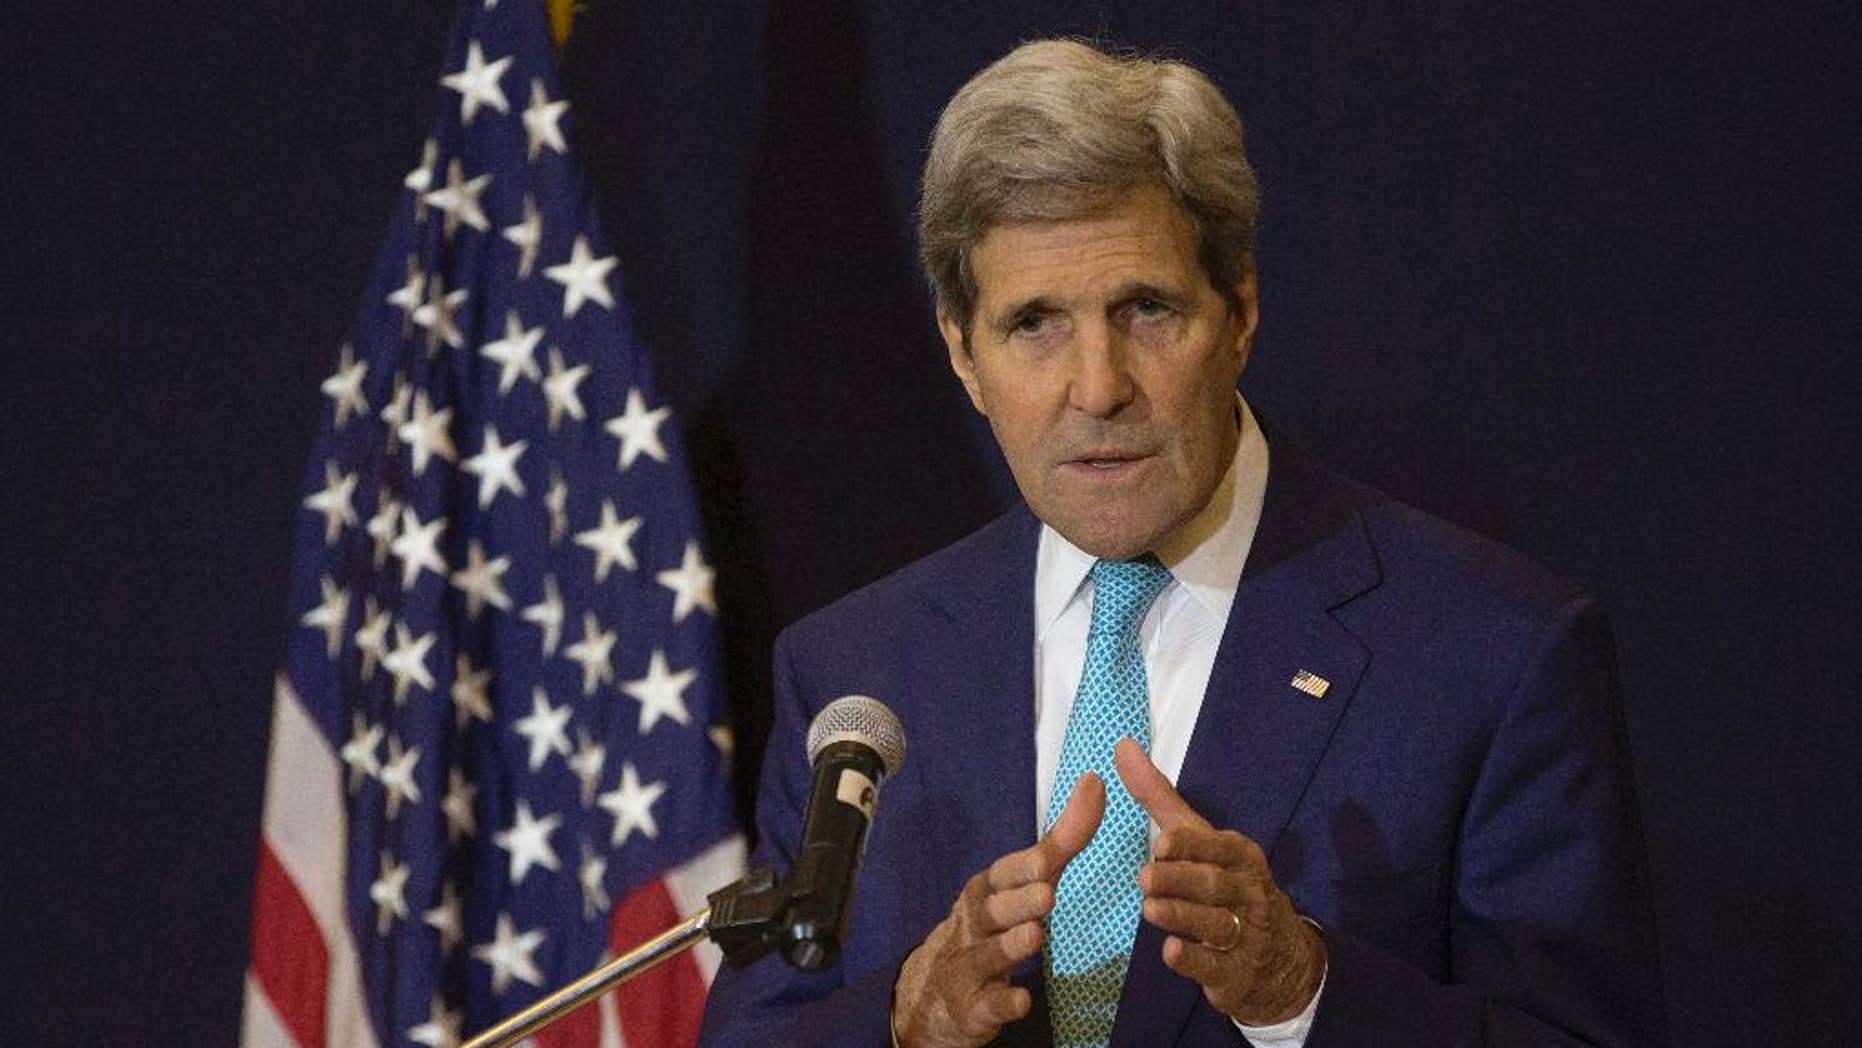 """U.S. Secretary of State John Kerry speaks at a news conference in Sharm el-Sheikh March 14, 2015, after attending the Egypt Economic Development Conference the previous day. Kerry says he hopes Israel elects a government that can address the country's domestic needs and also """"meets the hope for peace."""" (AP Photo/Brian Snyder, Pool)"""